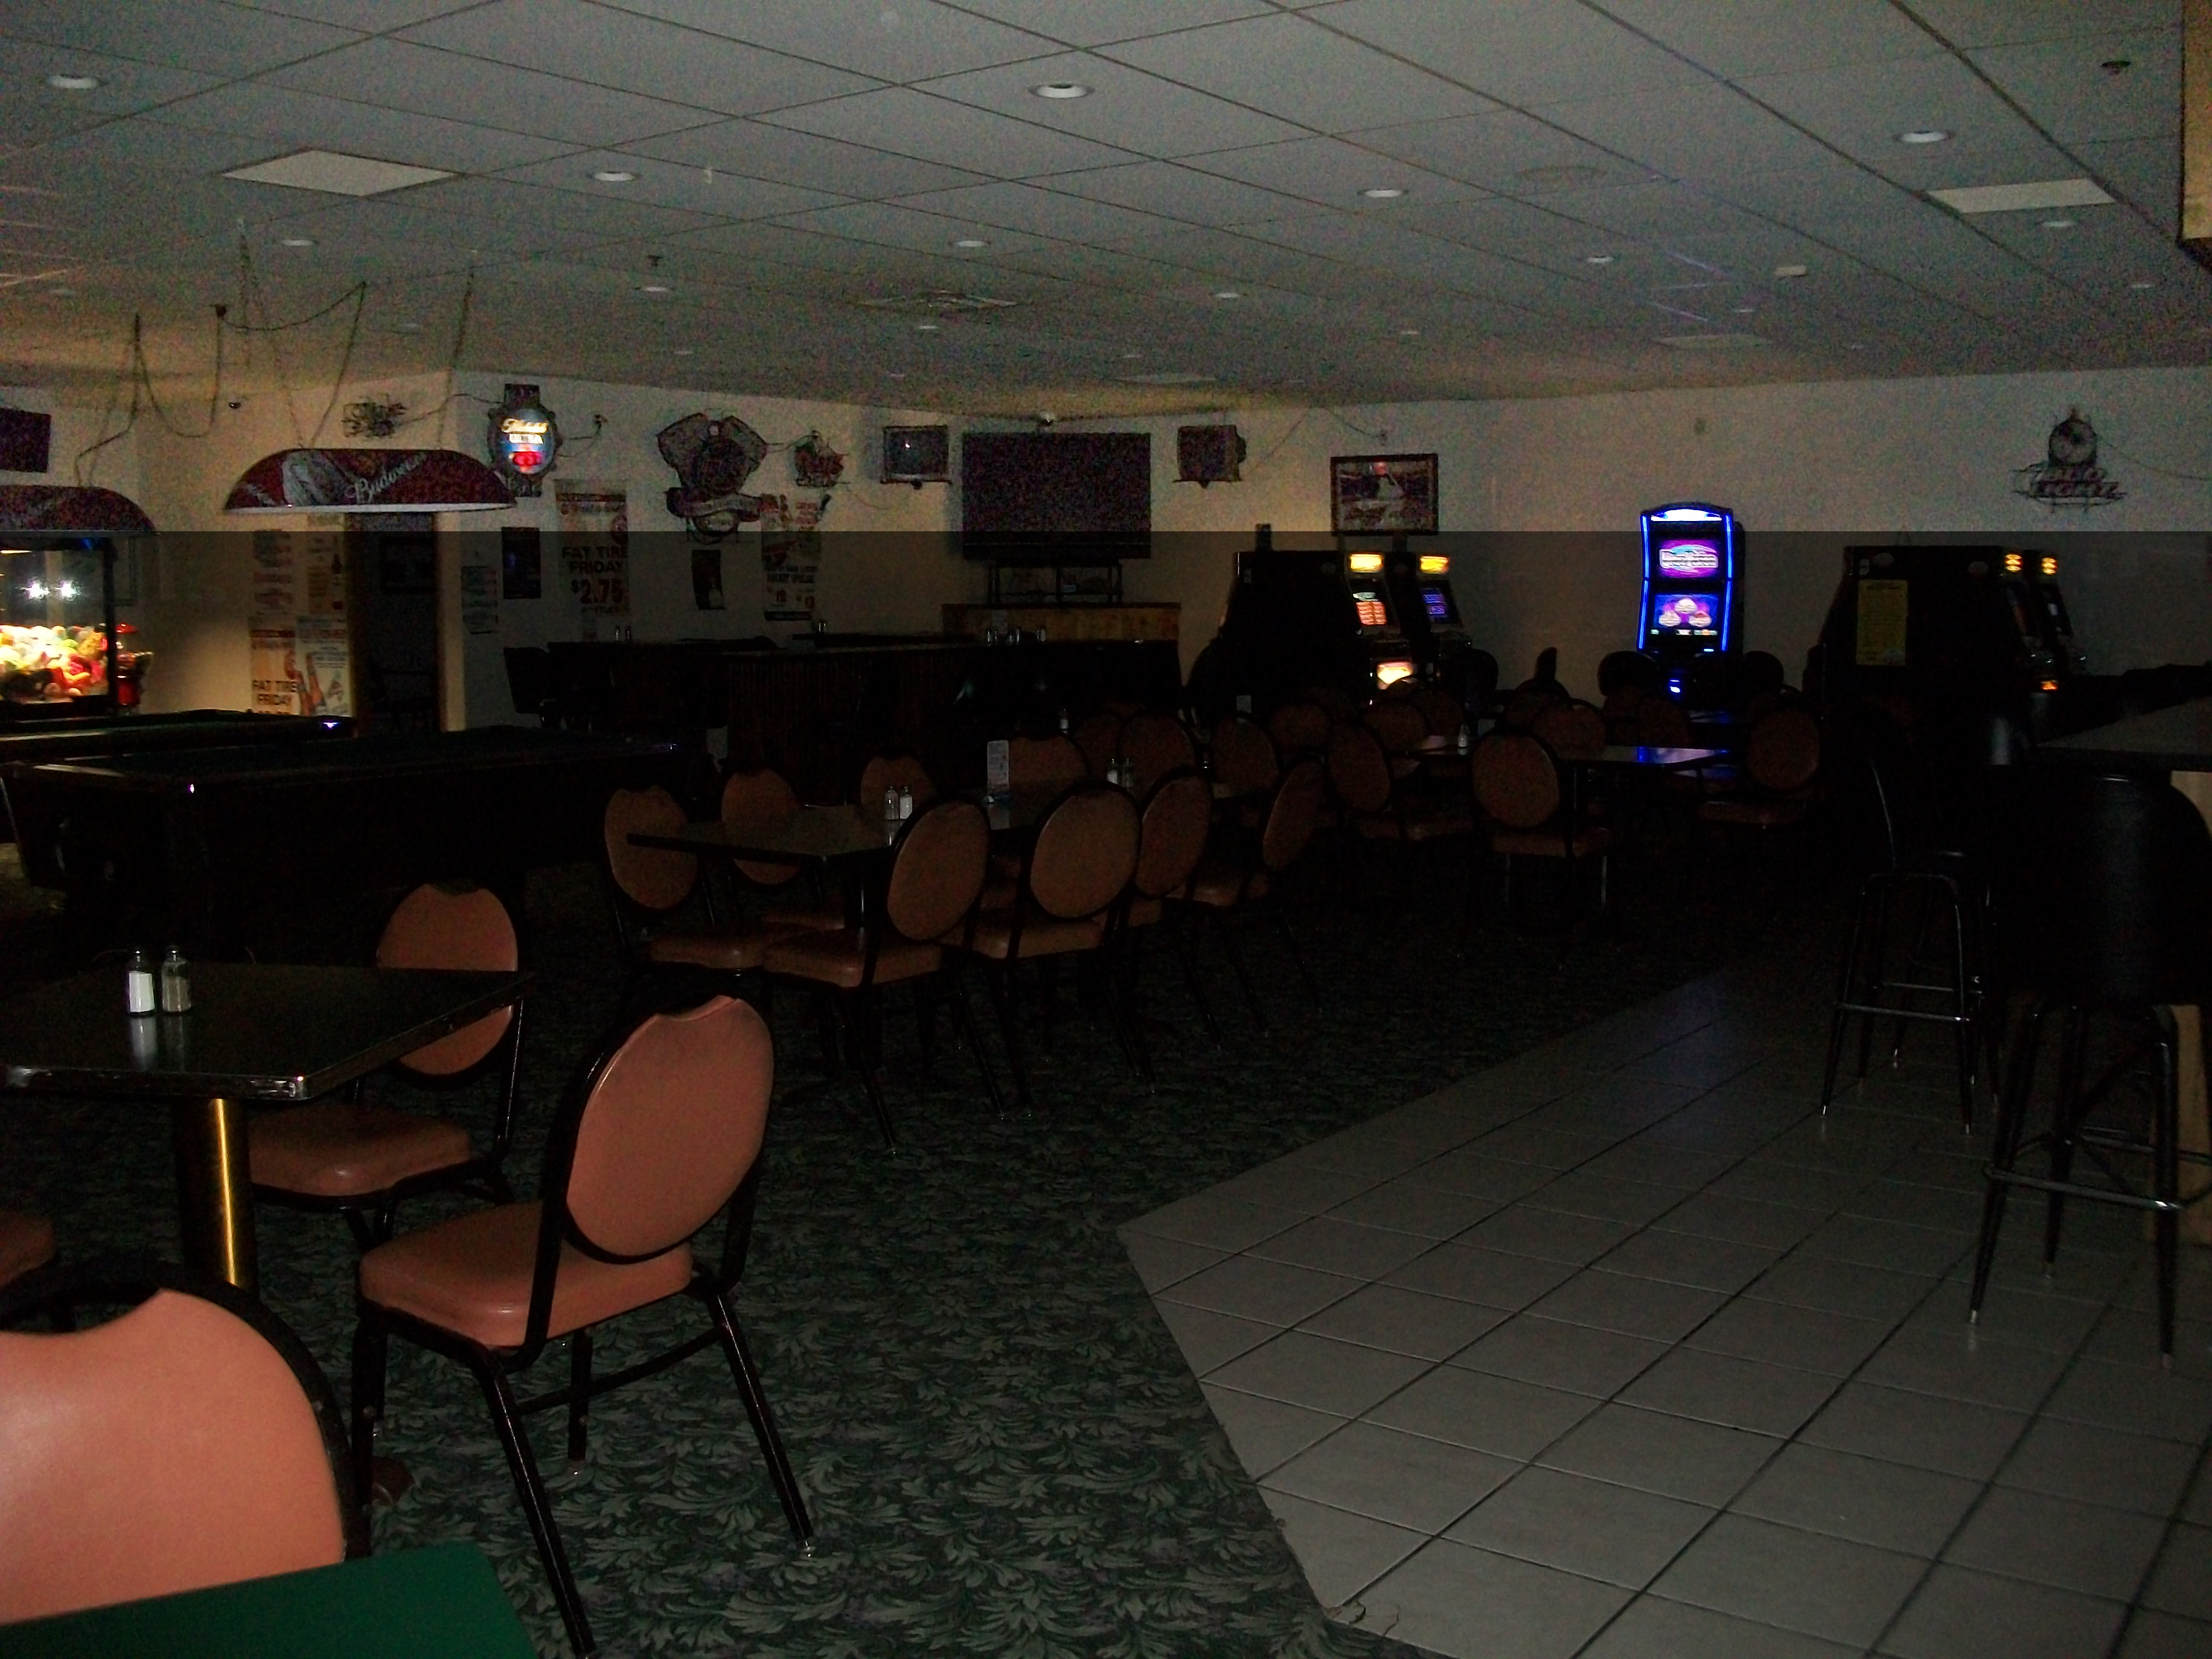 A picture of the main bar area taken from behind a pool table. In front of the two pool tables are tables and chairs, and to the sides are taller black barettes with bar stools beside them. There are video lottery machines beside some of the barettes on either side of the room. The bar is on the opposite side of the room.